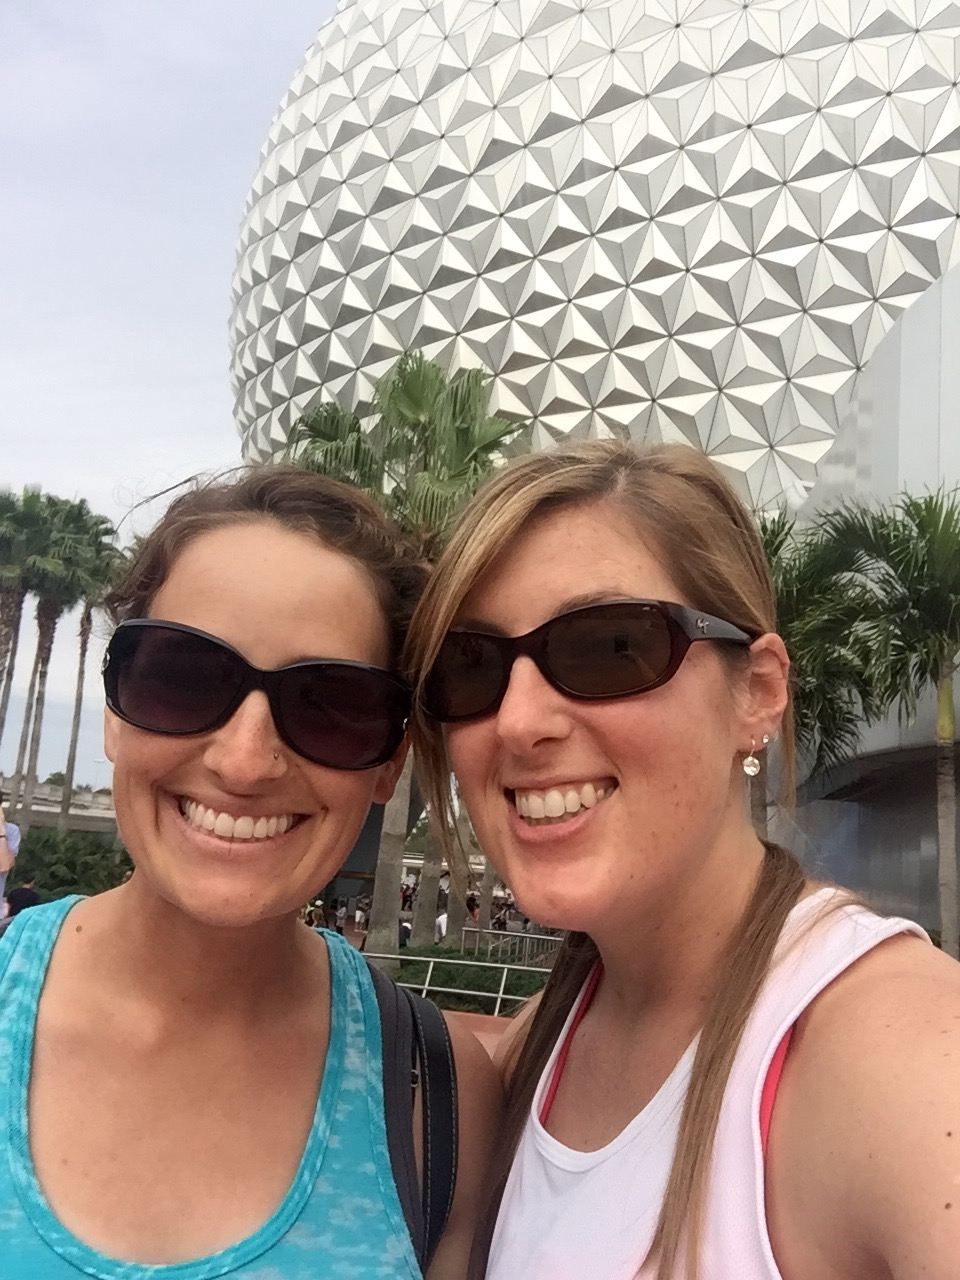 Having fun at Epcot waiting for our room to be ready.